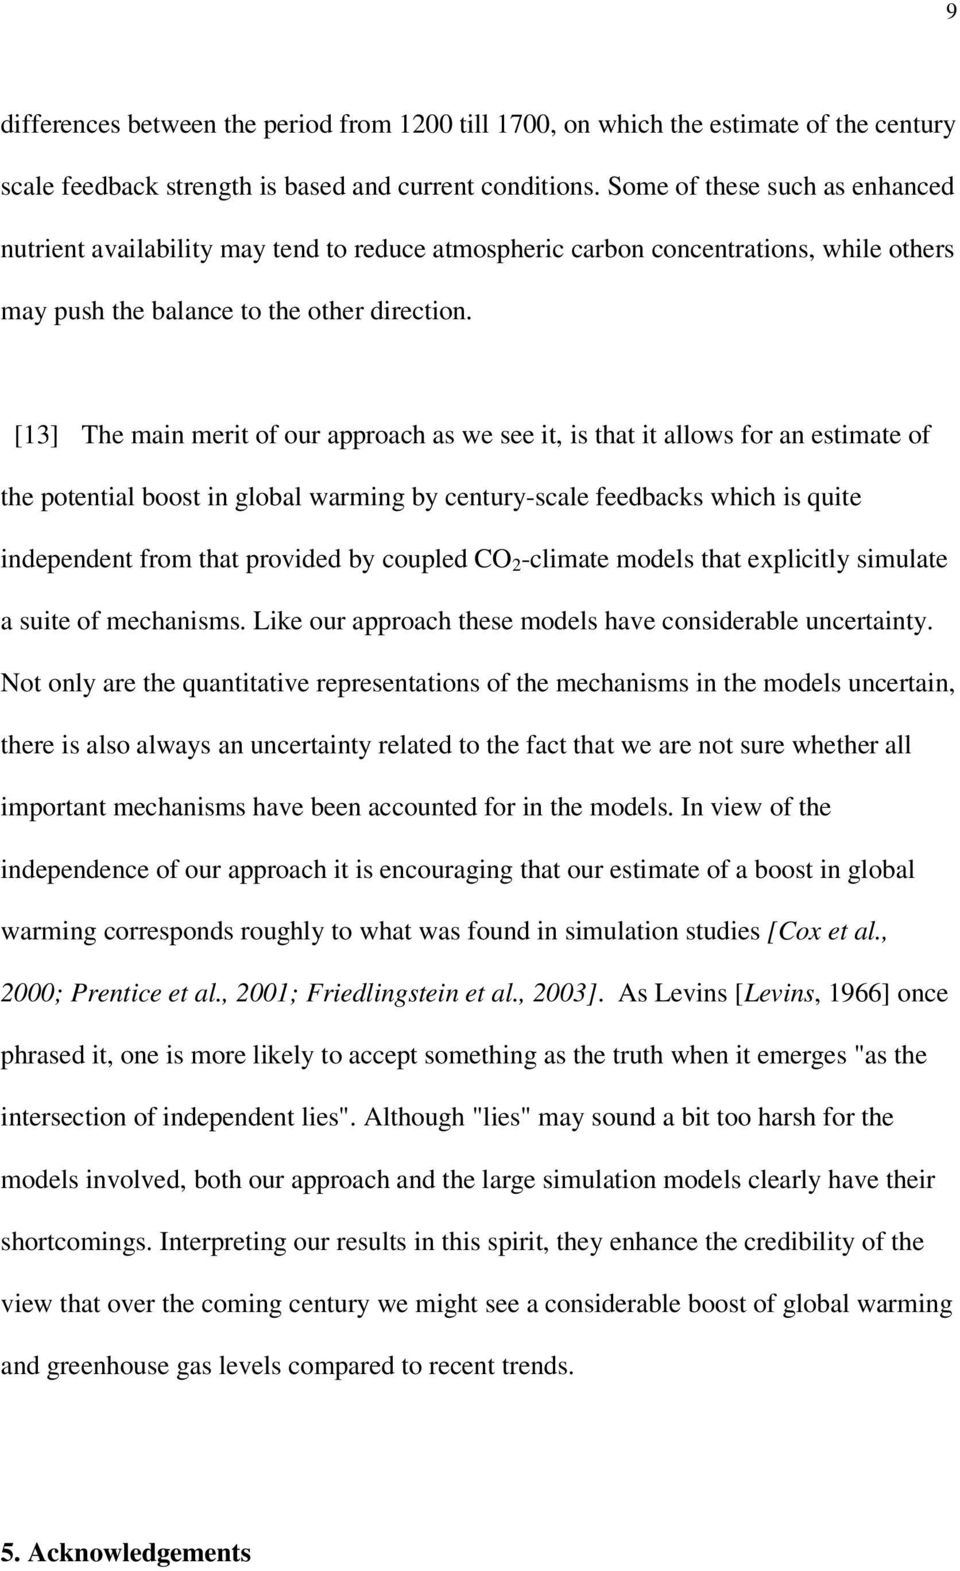 [13] The main merit of our approach as we see it, is that it allows for an estimate of the potential boost in global warming by century-scale feedbacks which is quite independent from that provided